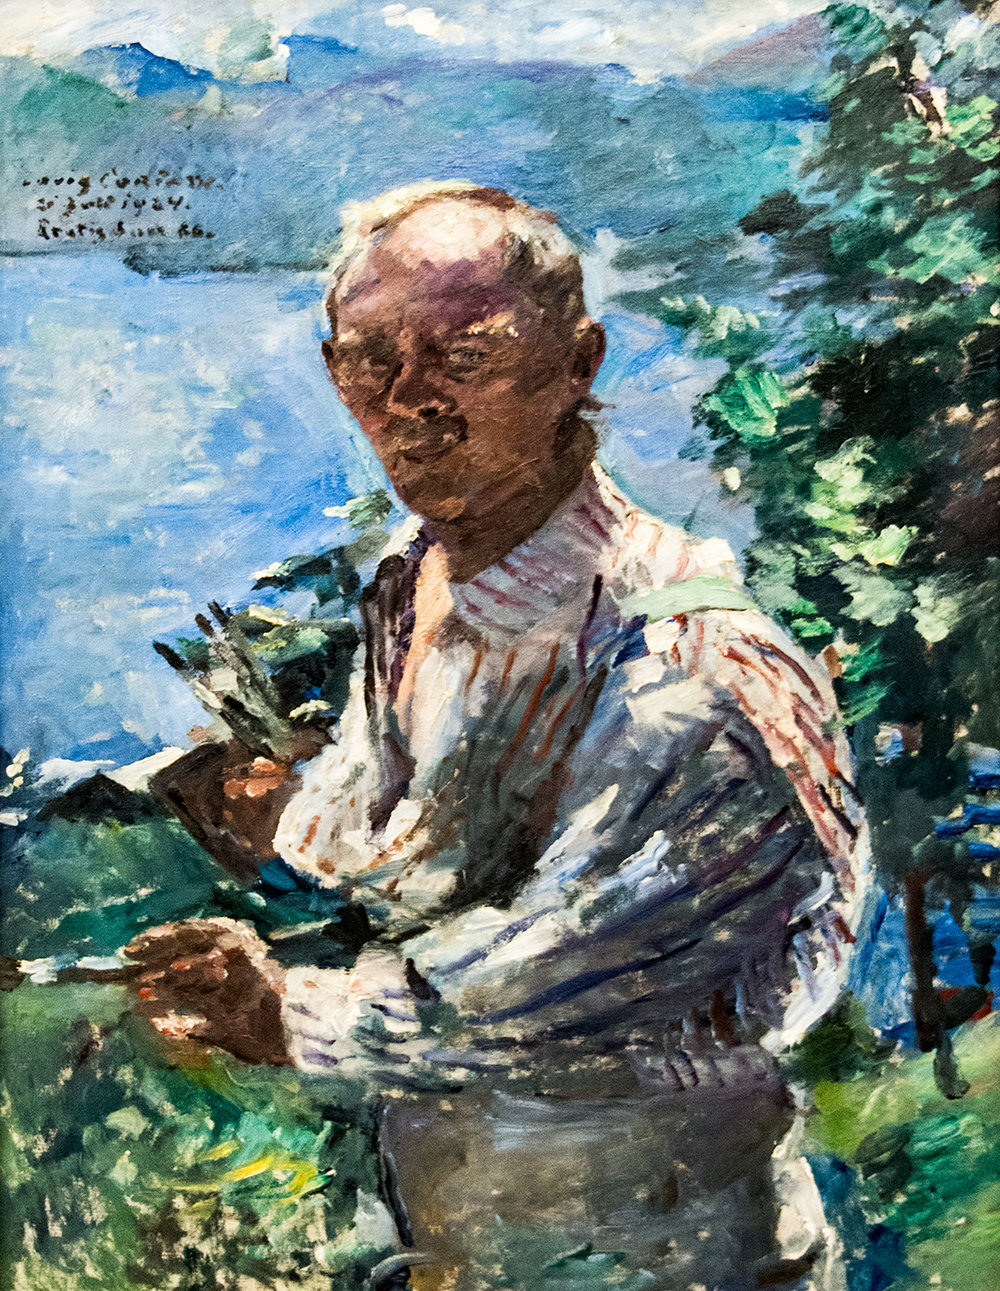 Lovis Corinth,  Self-Portrait with Lake Walchensee in the Background  (1924), Neue Pinakothek